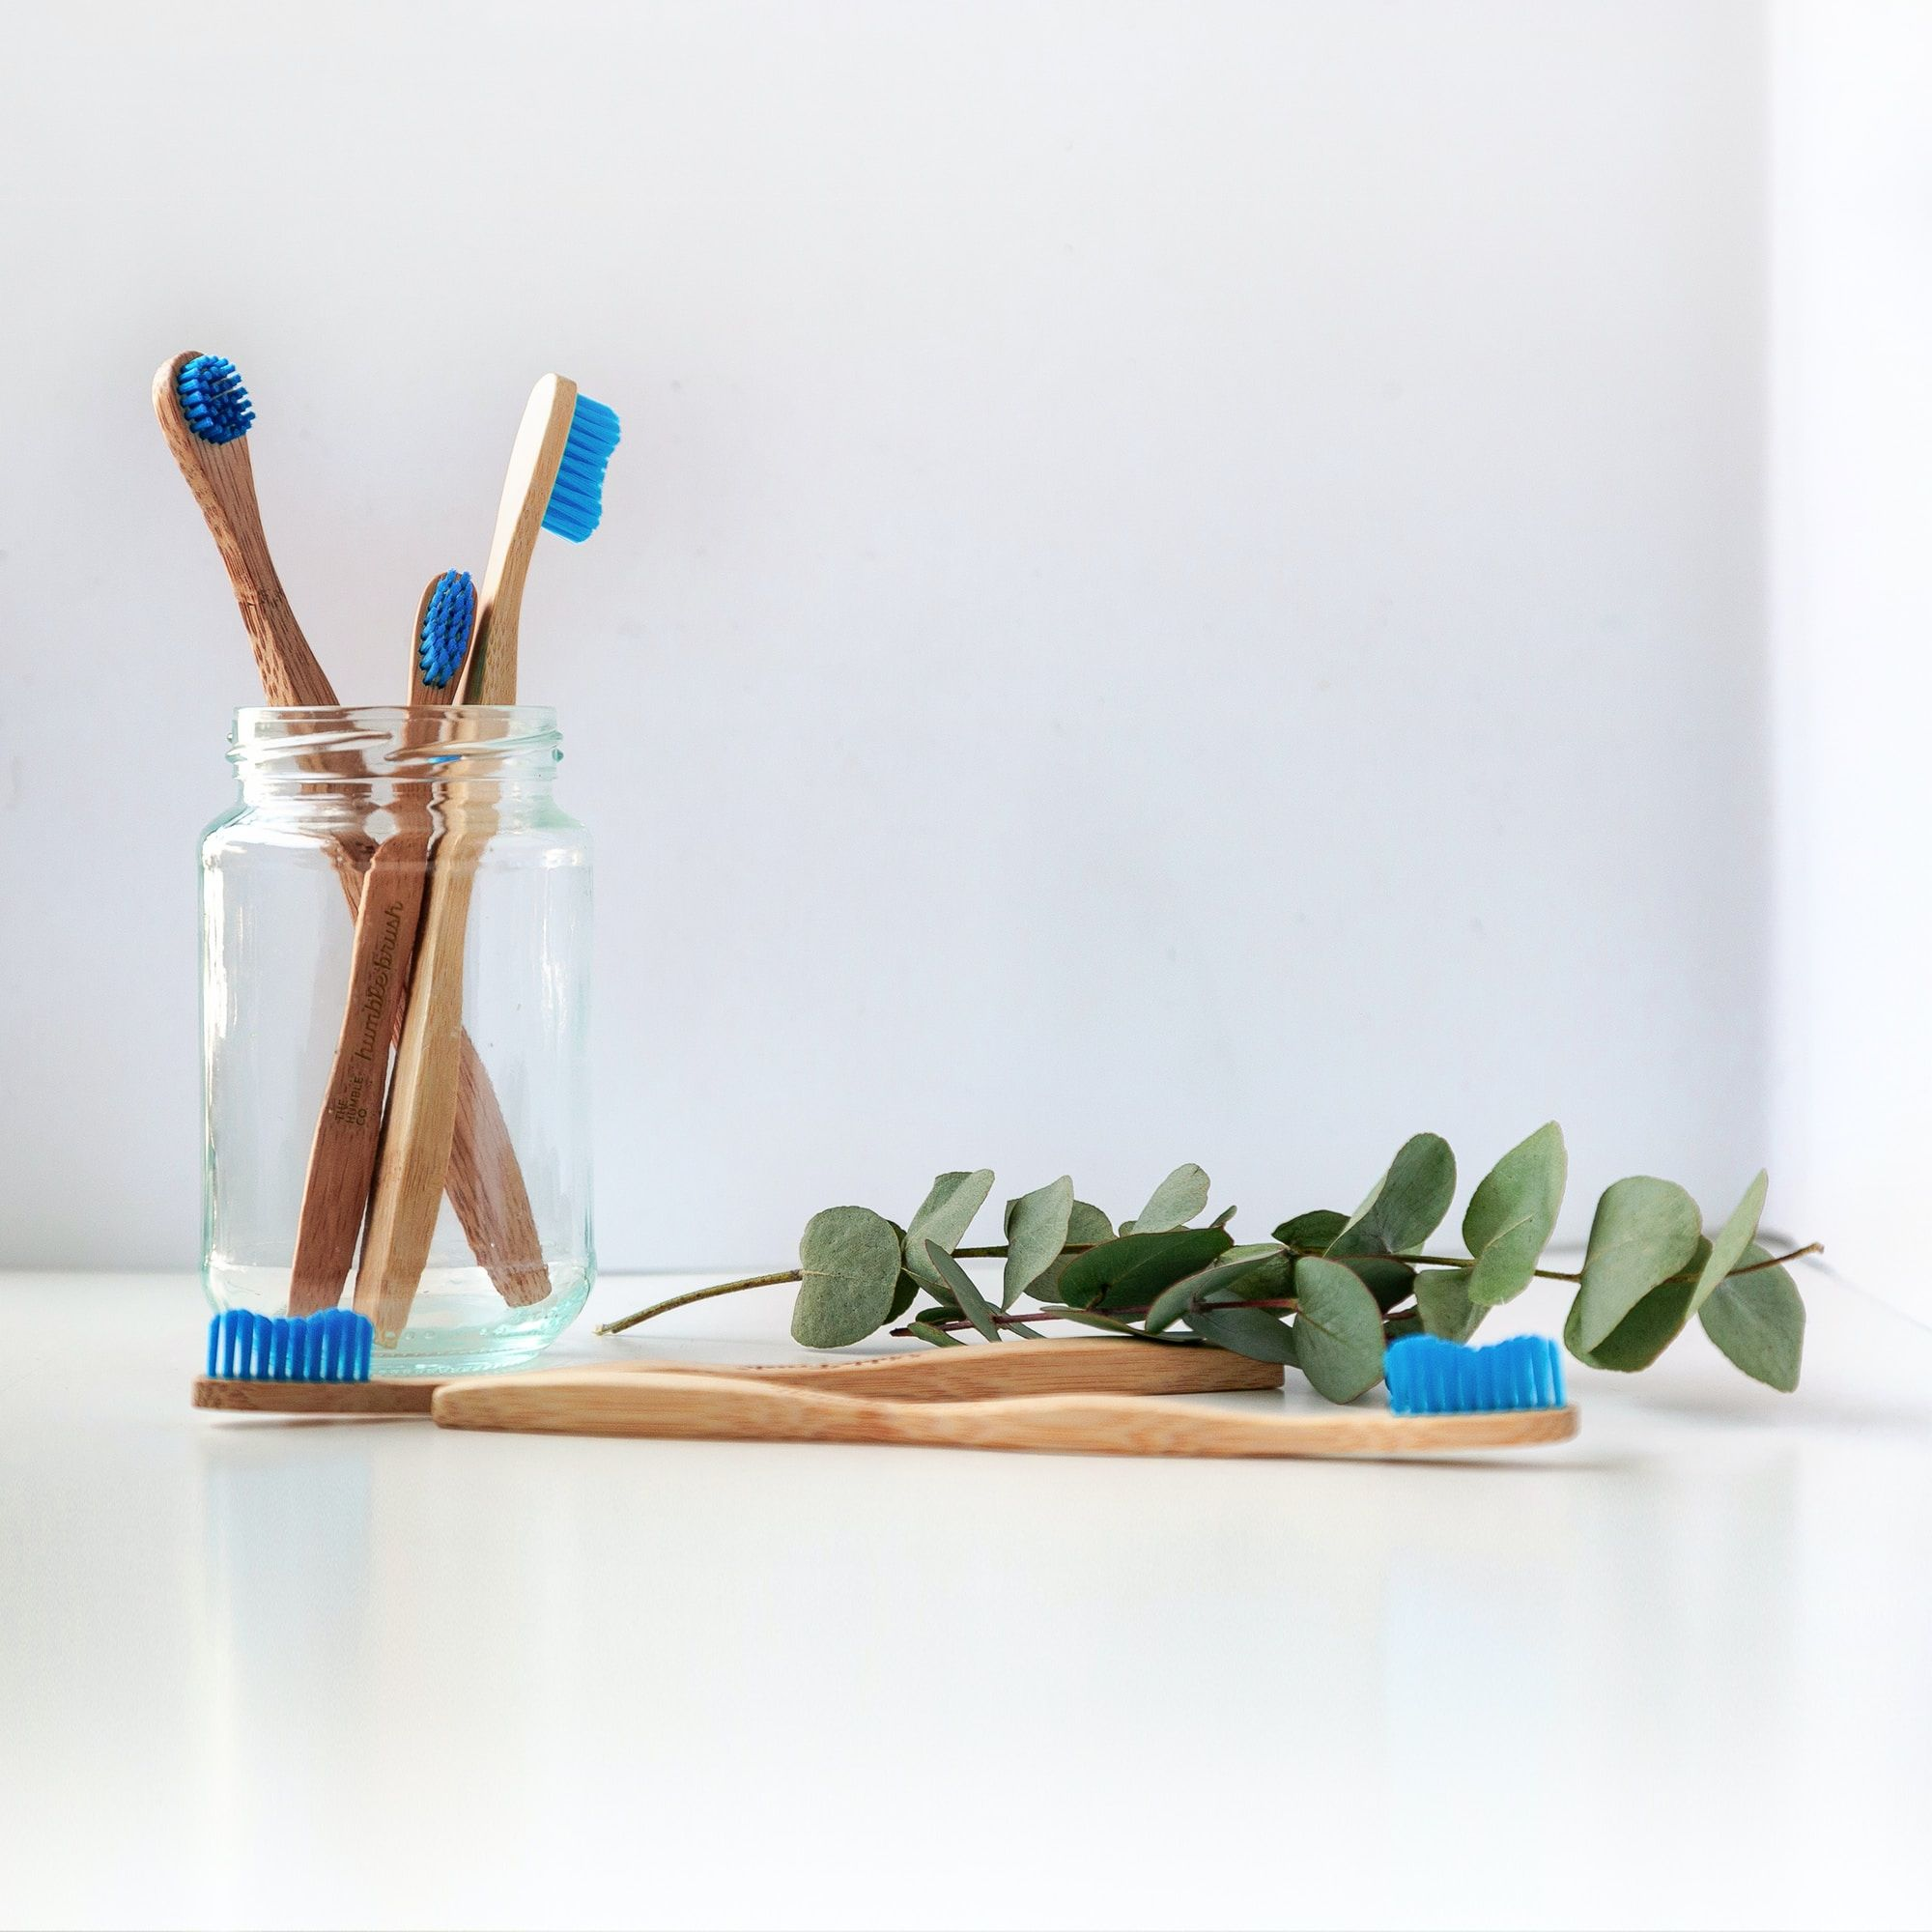 A set of 4 bamboo toothbrushes